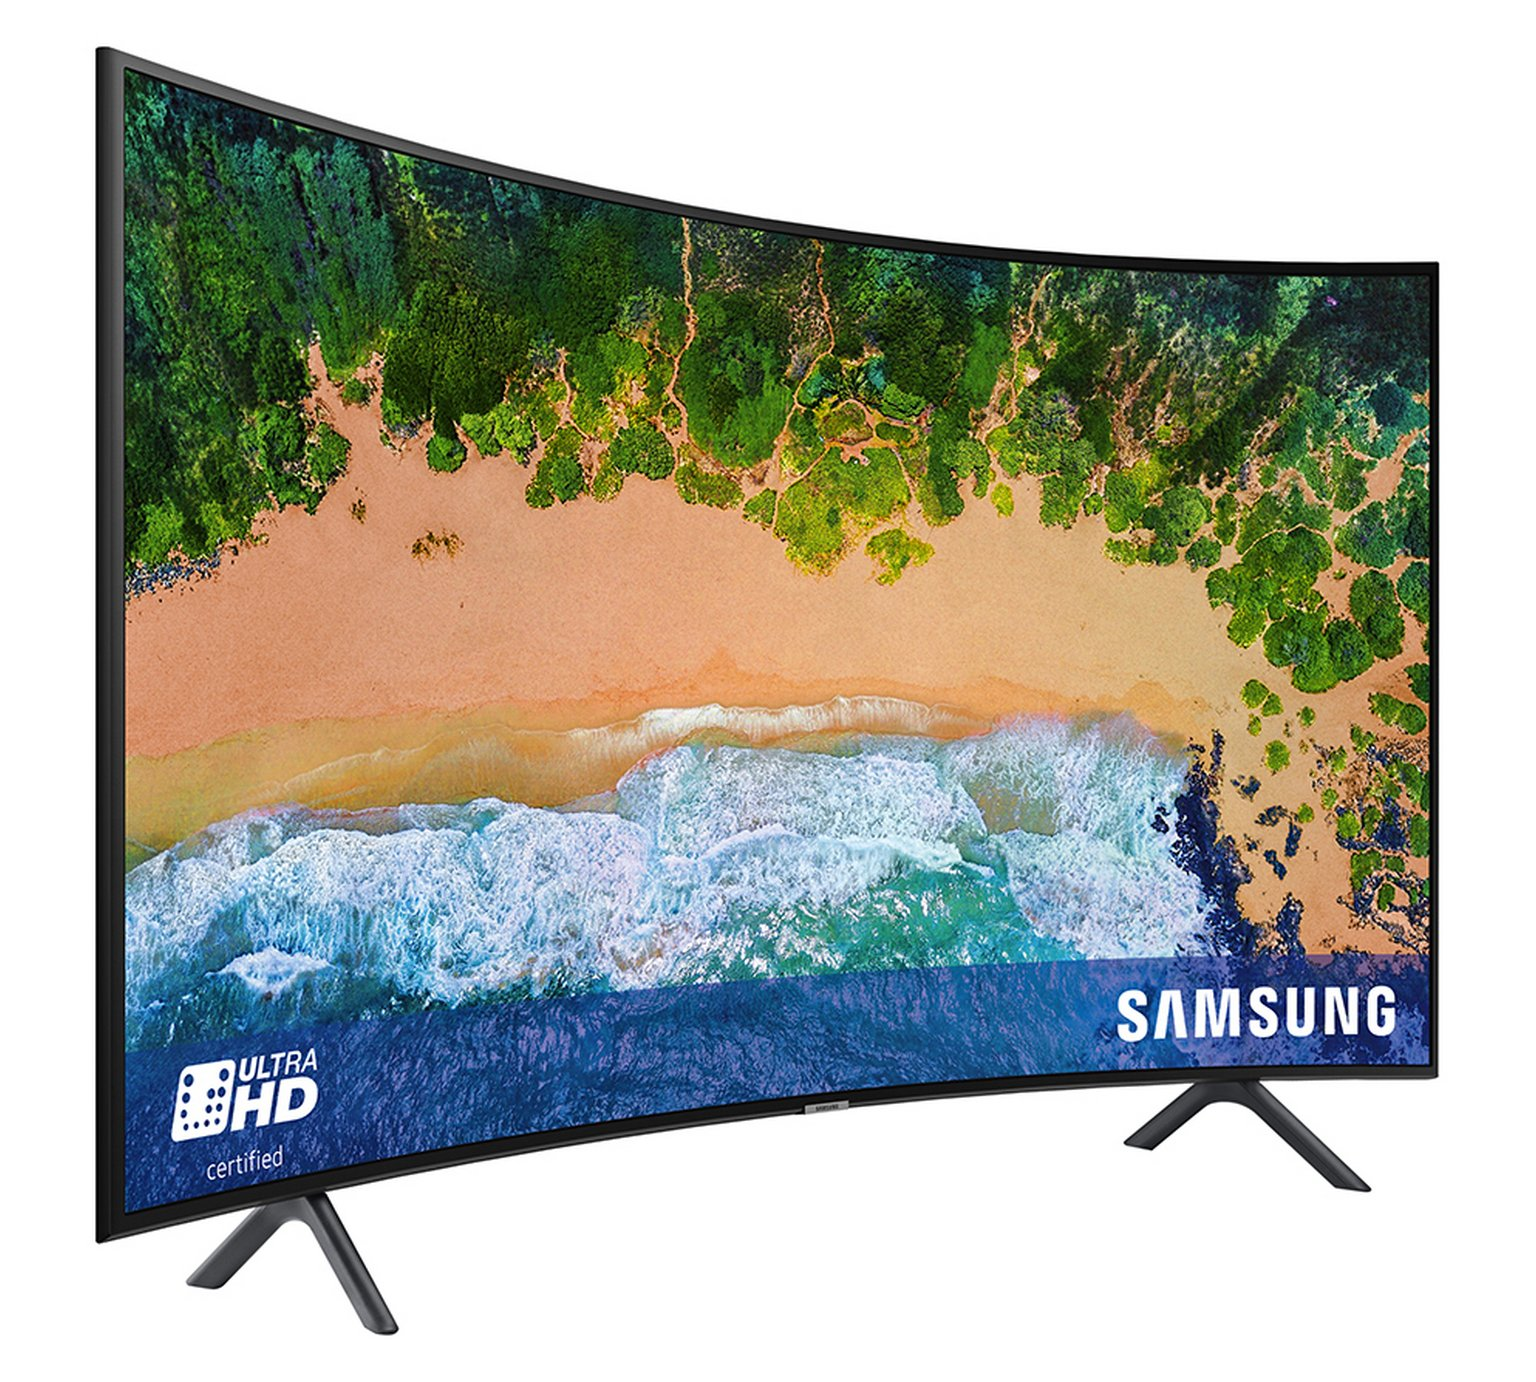 Samsung 49 Inch 49NU7300 Smart 4K UHD Curved TV With HDR by Samsung 810/2096